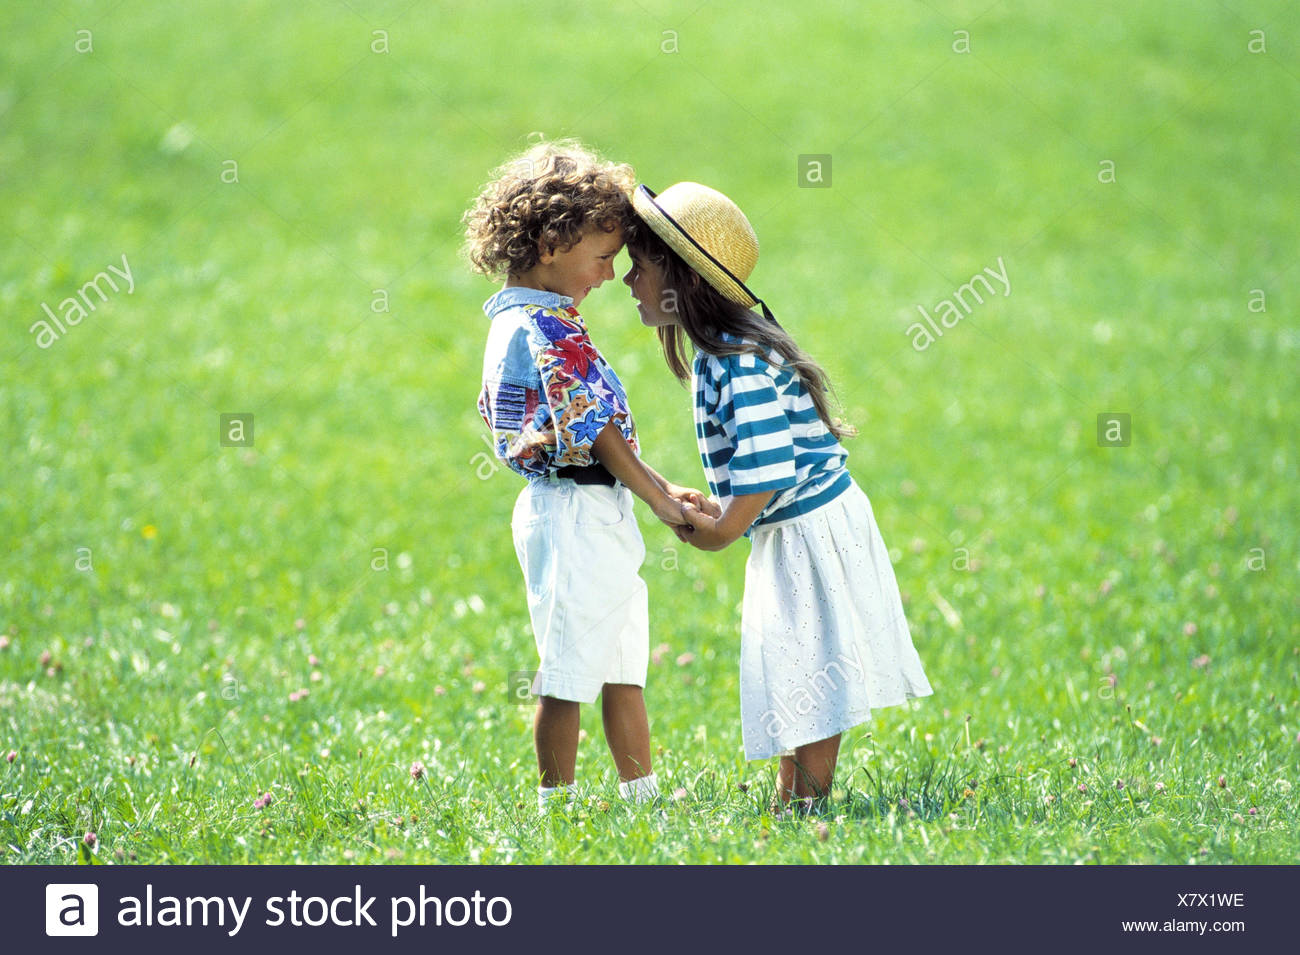 Meadow, girl, boy, hands hold, eye contact, outside, children, two, comradeship, affection, friends, friendship, 'the first love', falls in love, flirtation, flirt, - Stock Image